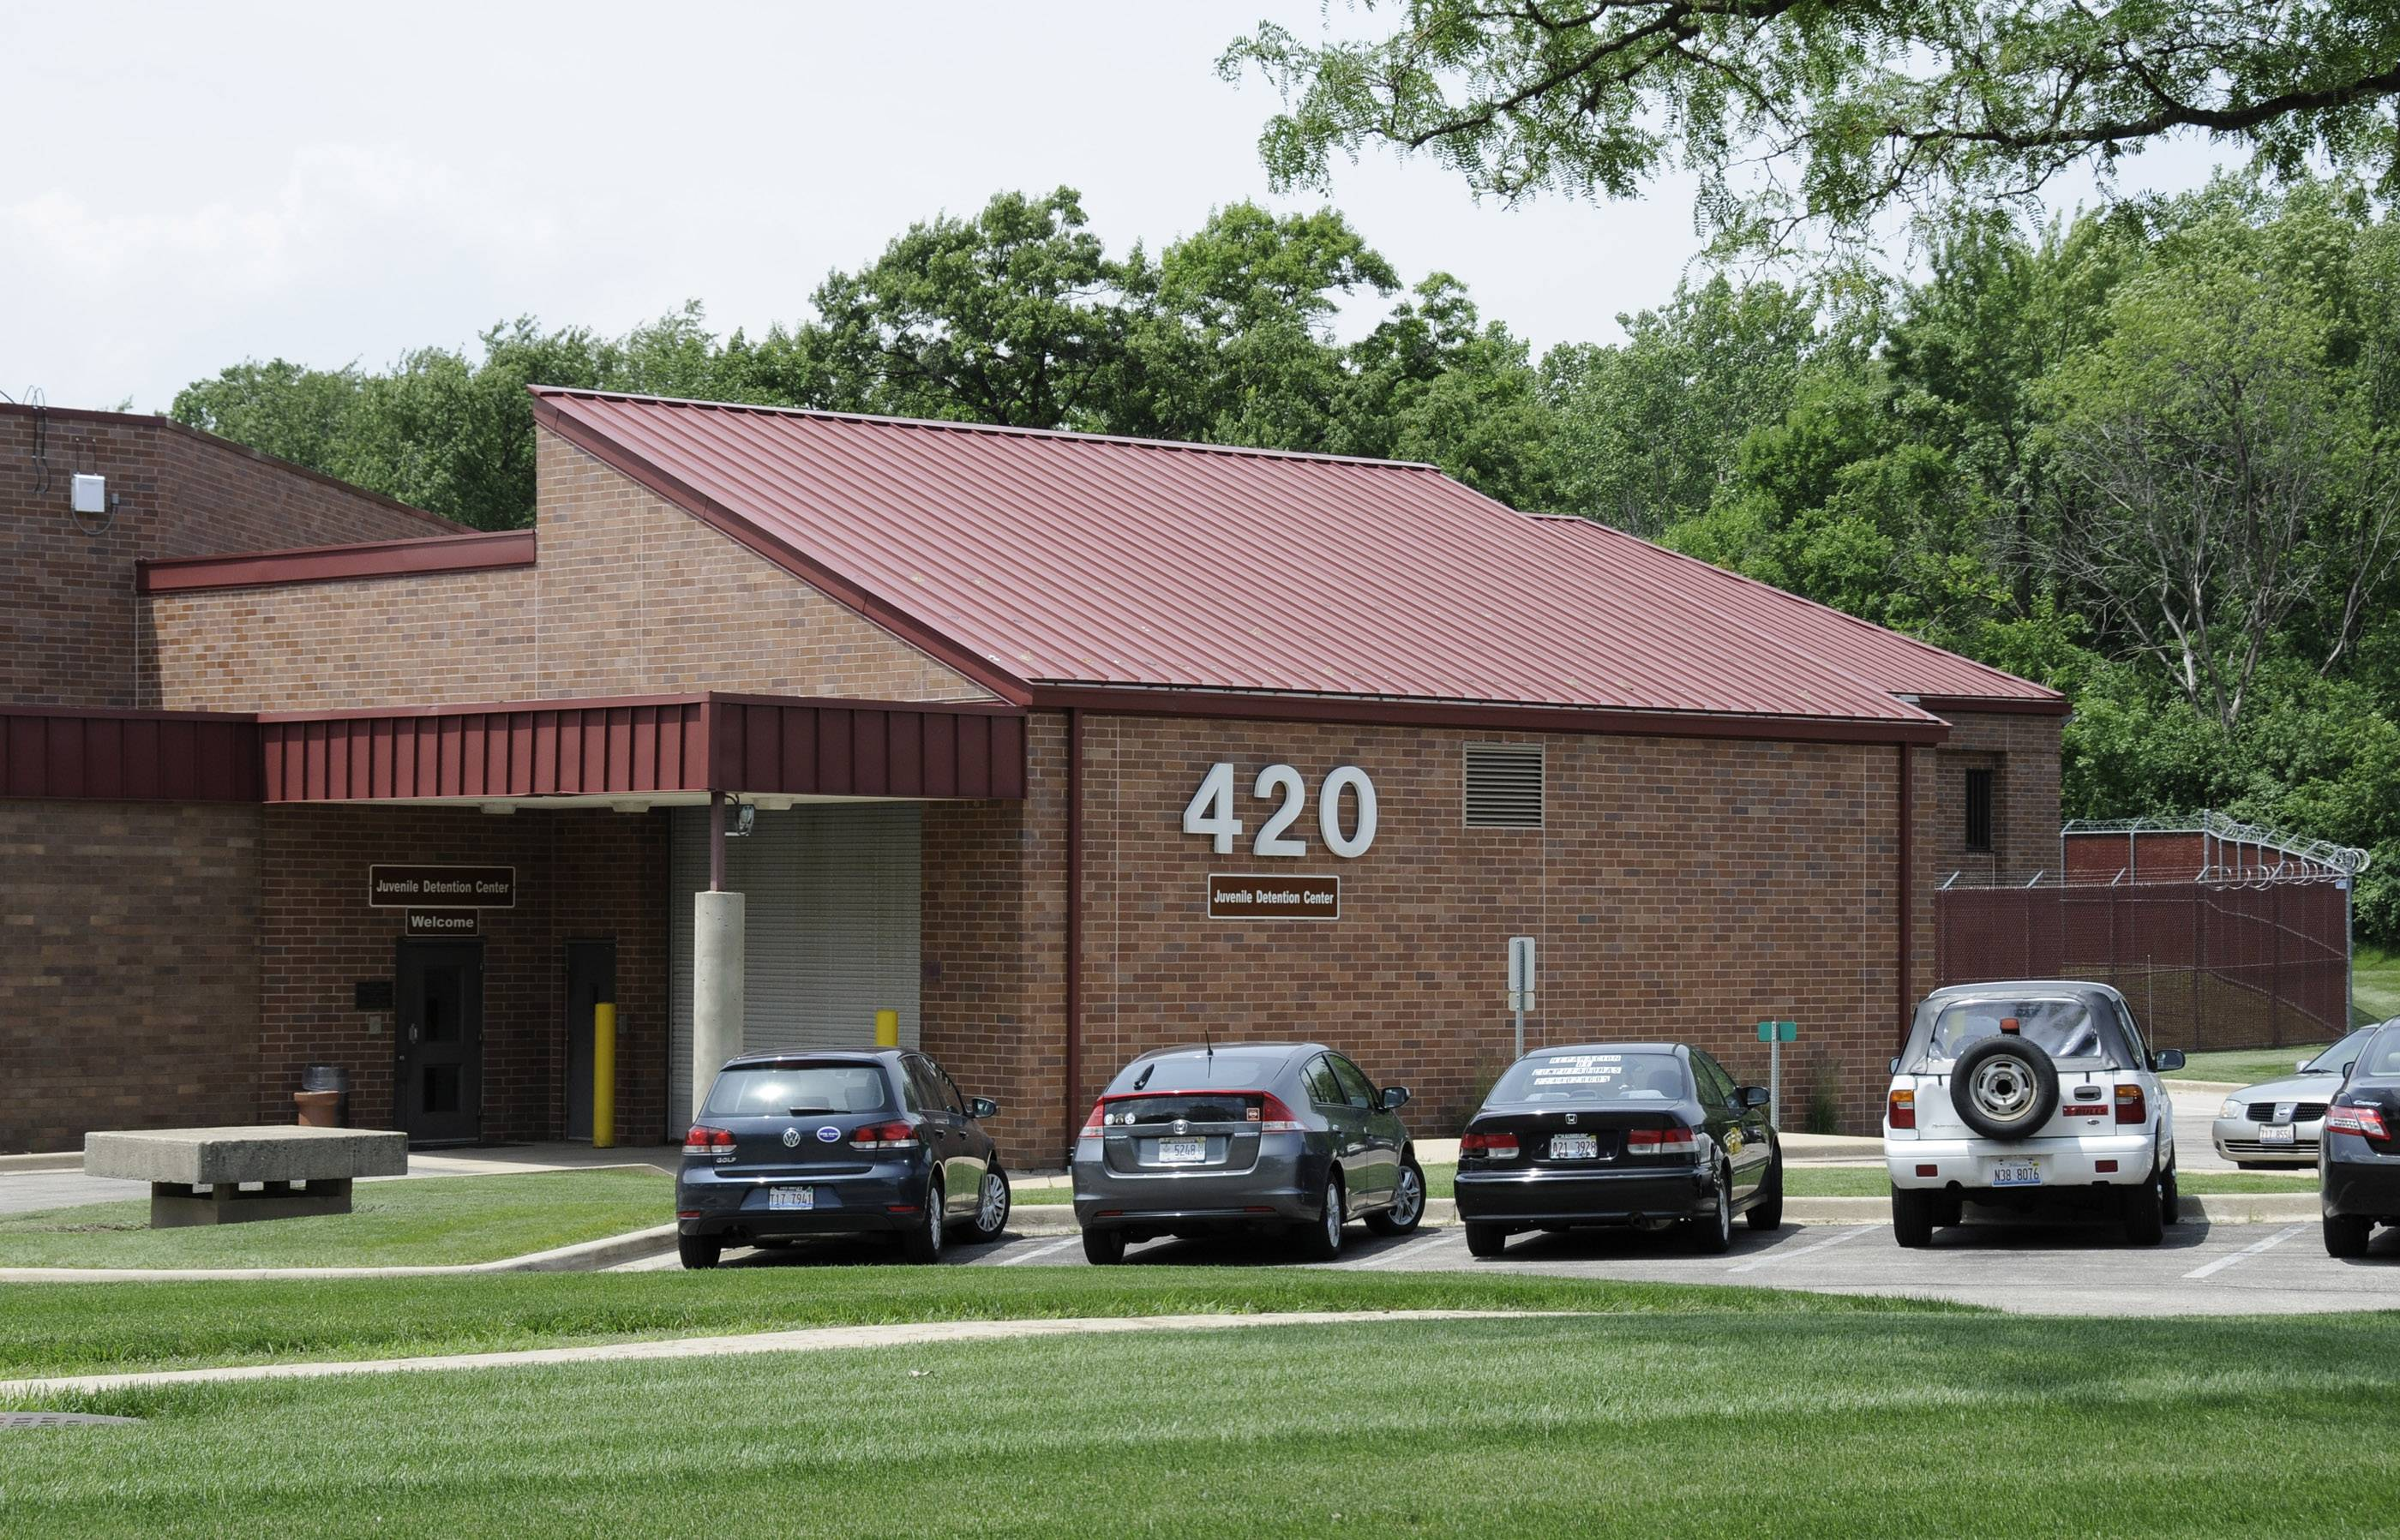 DuPage County Board members are praising a deal that has DuComm moving into the county's former youth home by fall 2018. As part of its plan, DuComm will renovate more than 16,000 square feet of the building and construct a roughly 13,400-square-foot addition.